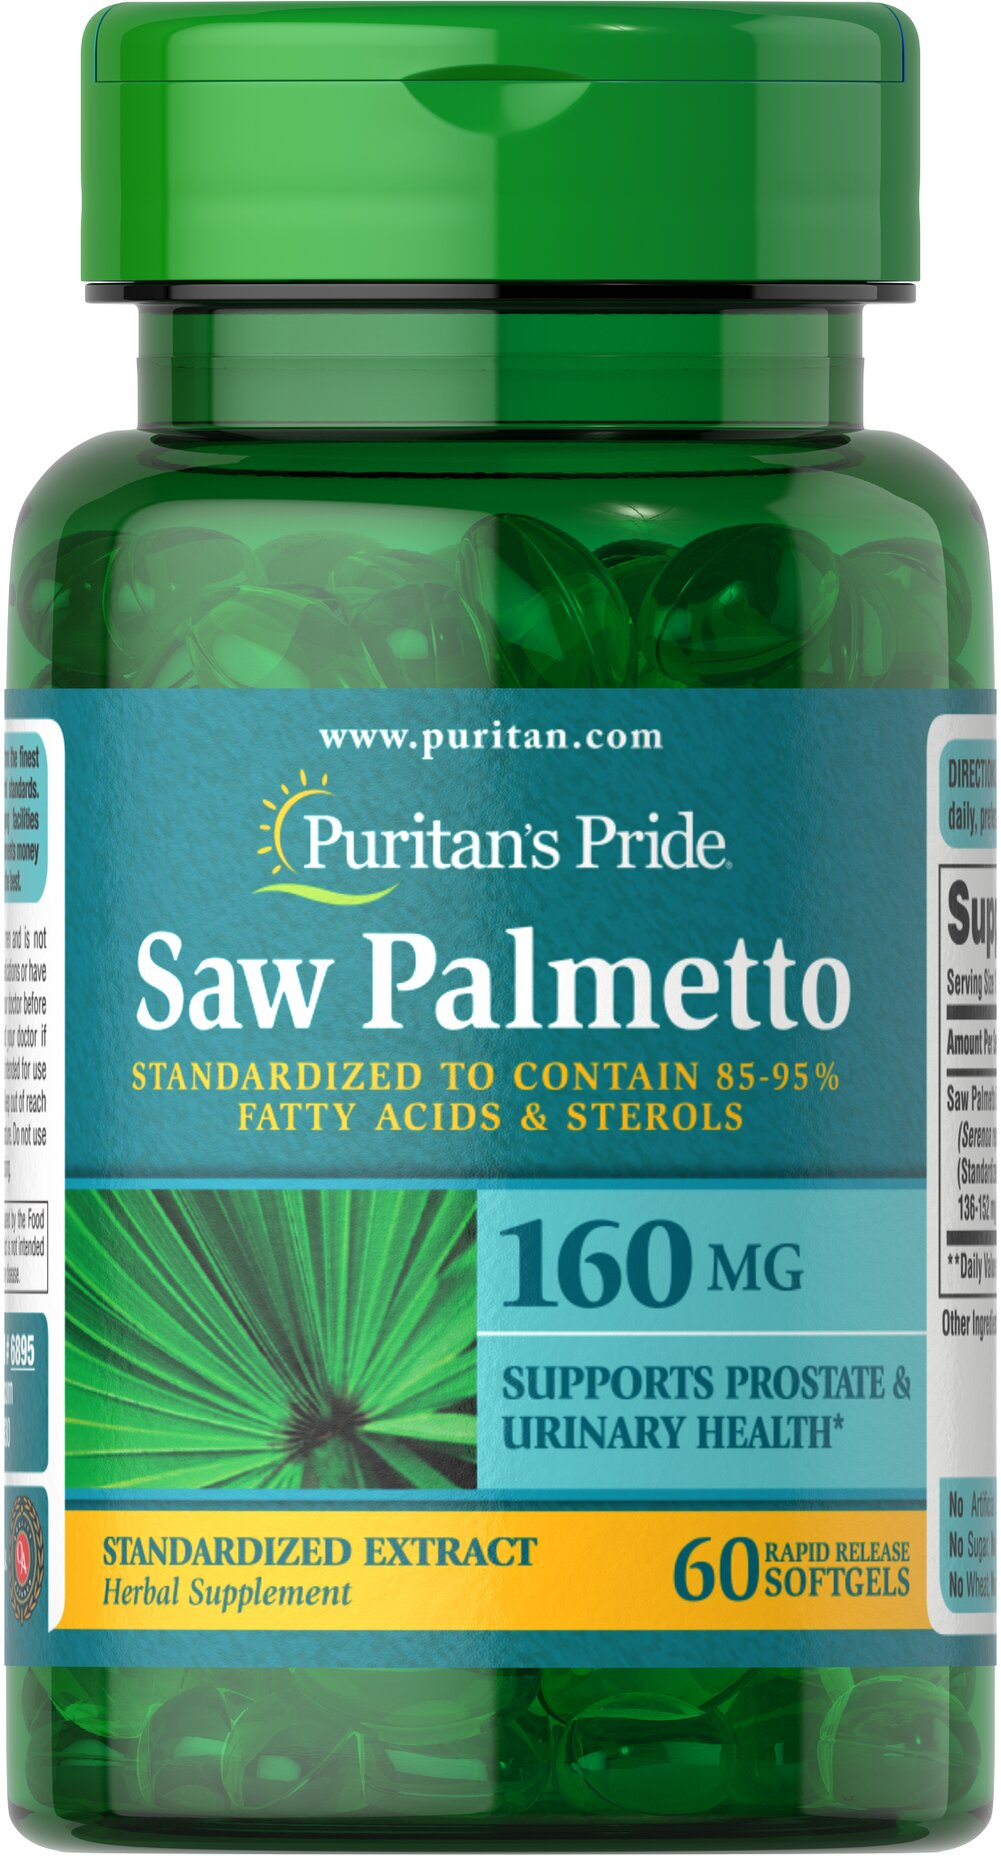 Saw Palmetto Standardized Extract 160 mg <p>Men the world over are discovering the beneficial properties of Saw Palmetto. Saw Palmetto contains phytochemicals, which support prostate health and urinary health.**</p><p>Our Saw Palmetto formula is fully assayed and standardized to ensure that each softgel contains 85-95% fatty acids and active sterols, which guarantees bioactivity.**</p> 60 Softgels 160 mg $9.59